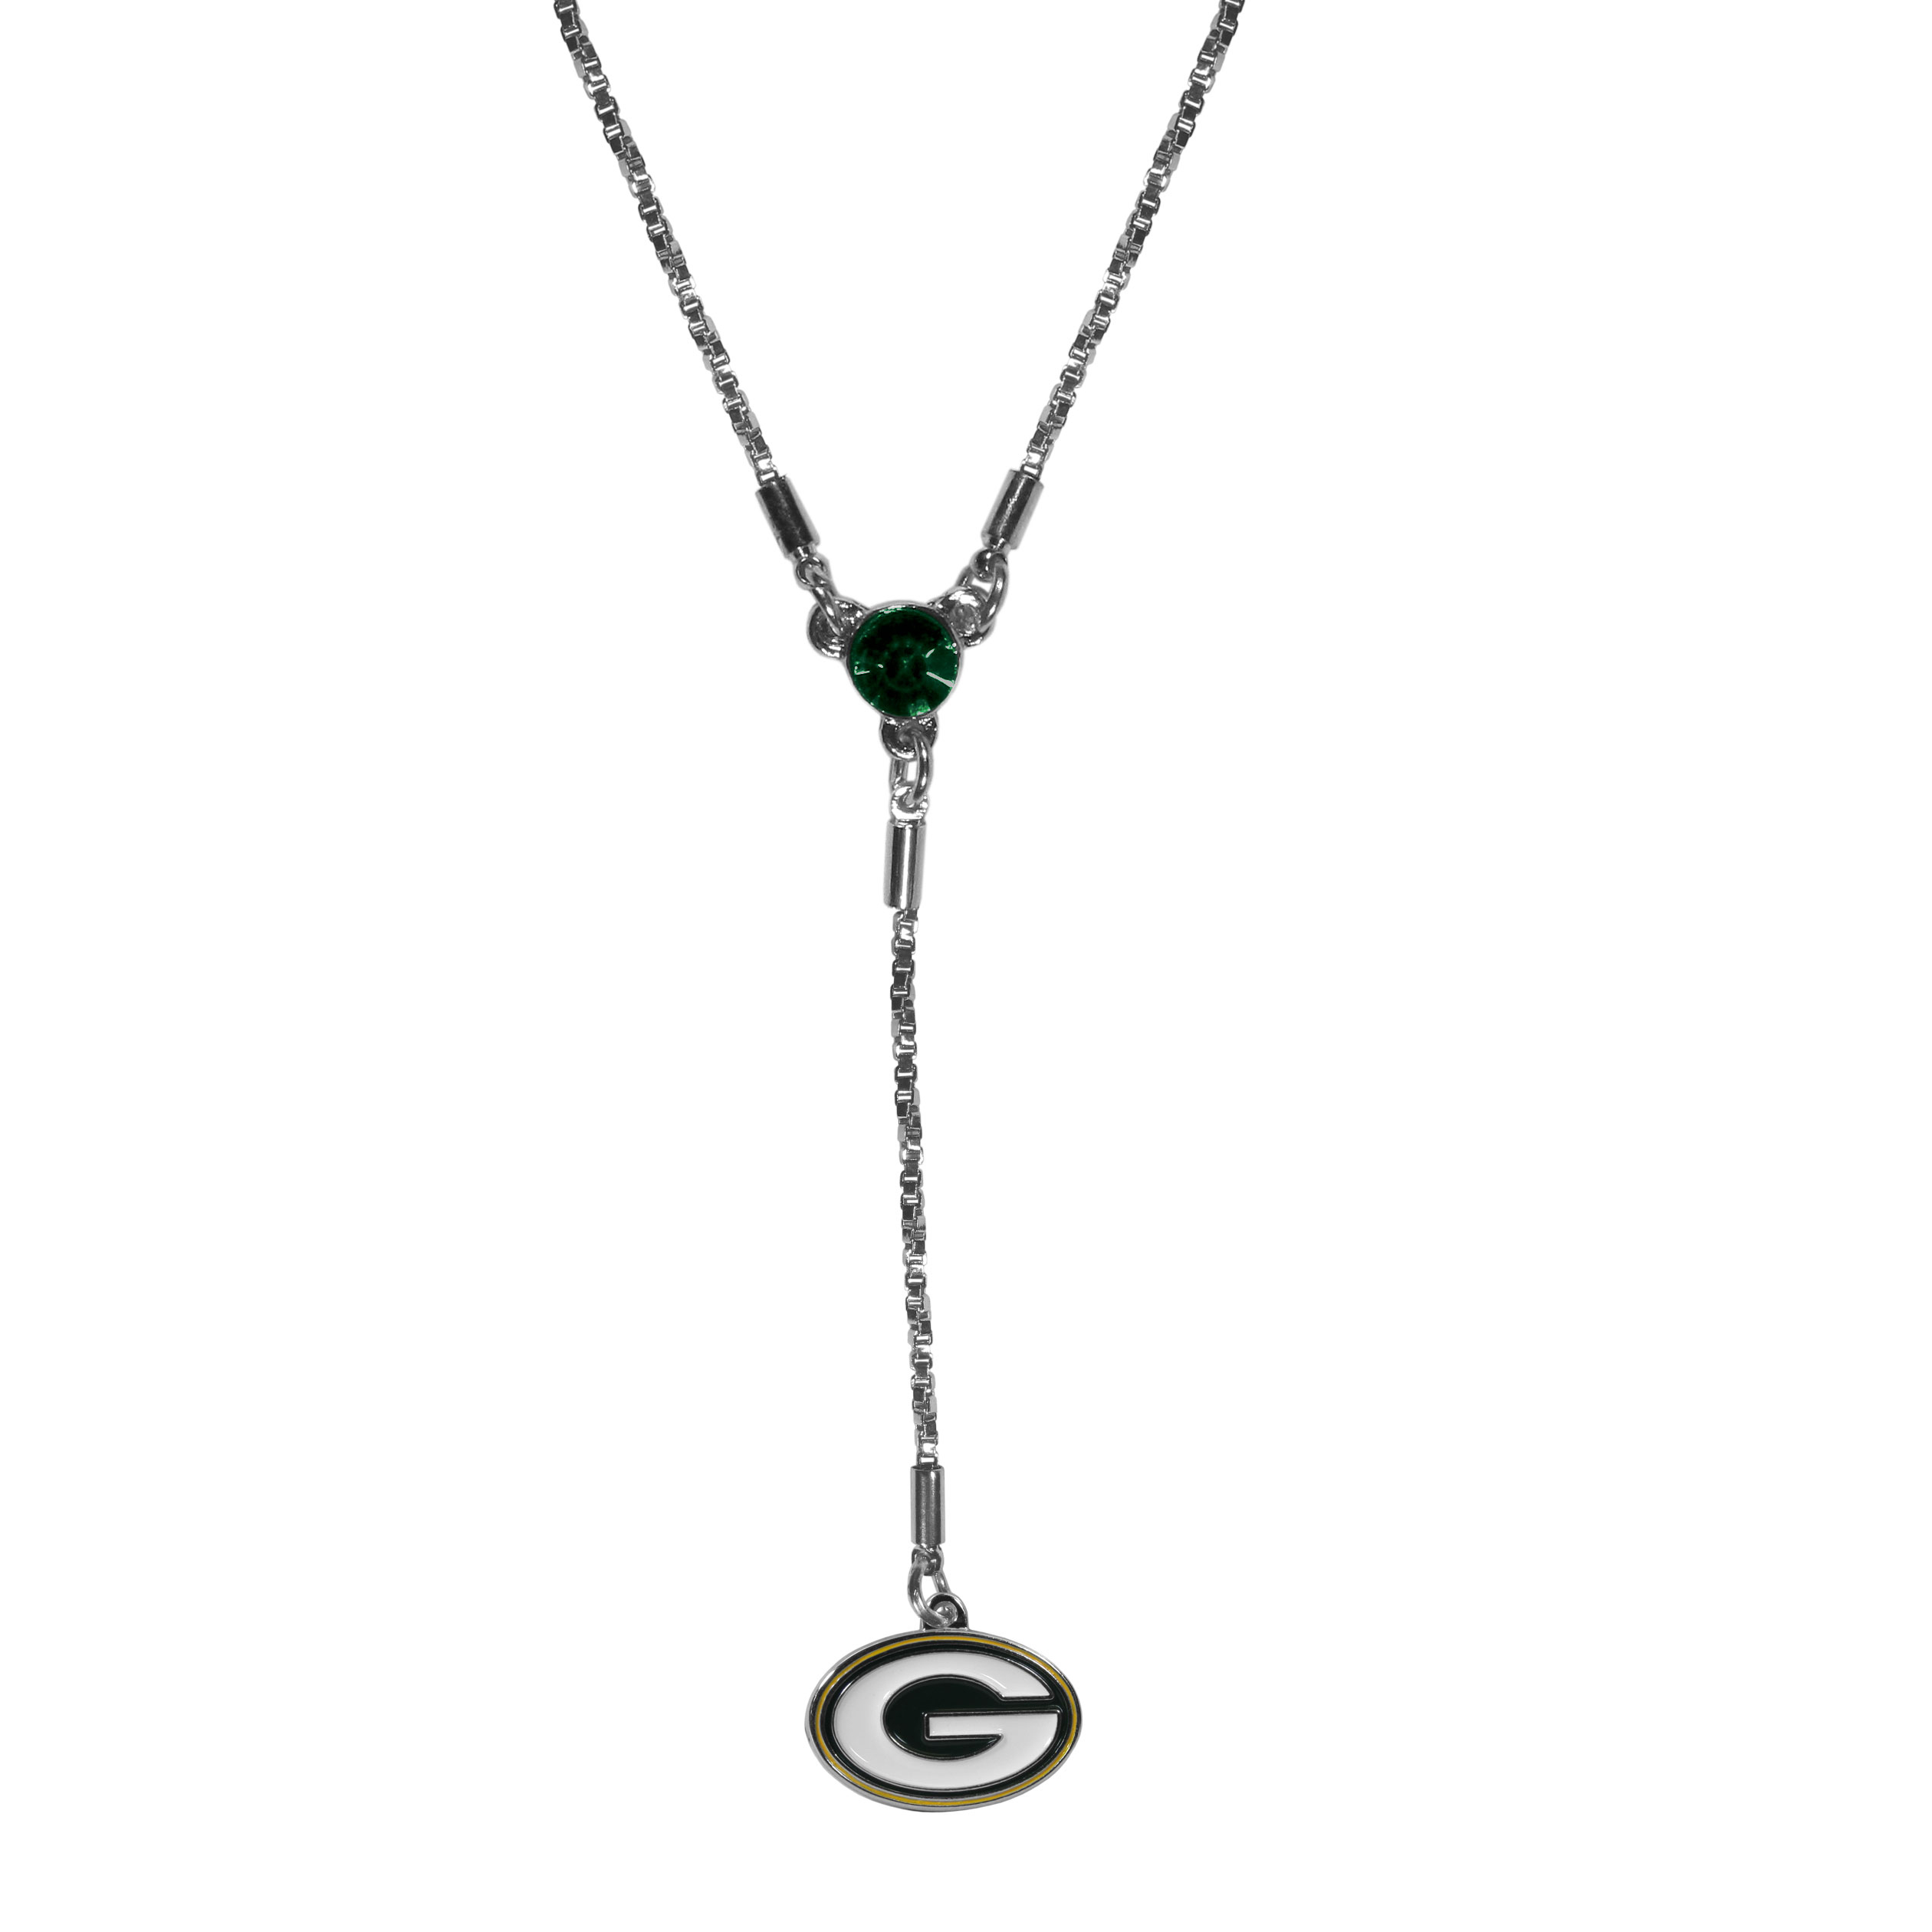 Green Bay Packers Lariat Necklace - This designer look is a stylish version of the classic lariat necklace. The chic box chain is 16 inches long with a 2 inch extender, the Y drop features a large team colored crystal with an expertly carved team charm. This trendy look is a perfect blend of sporty and chic making is a mush-have fashion accessory for the fashion-forward Green Bay Packers fan.